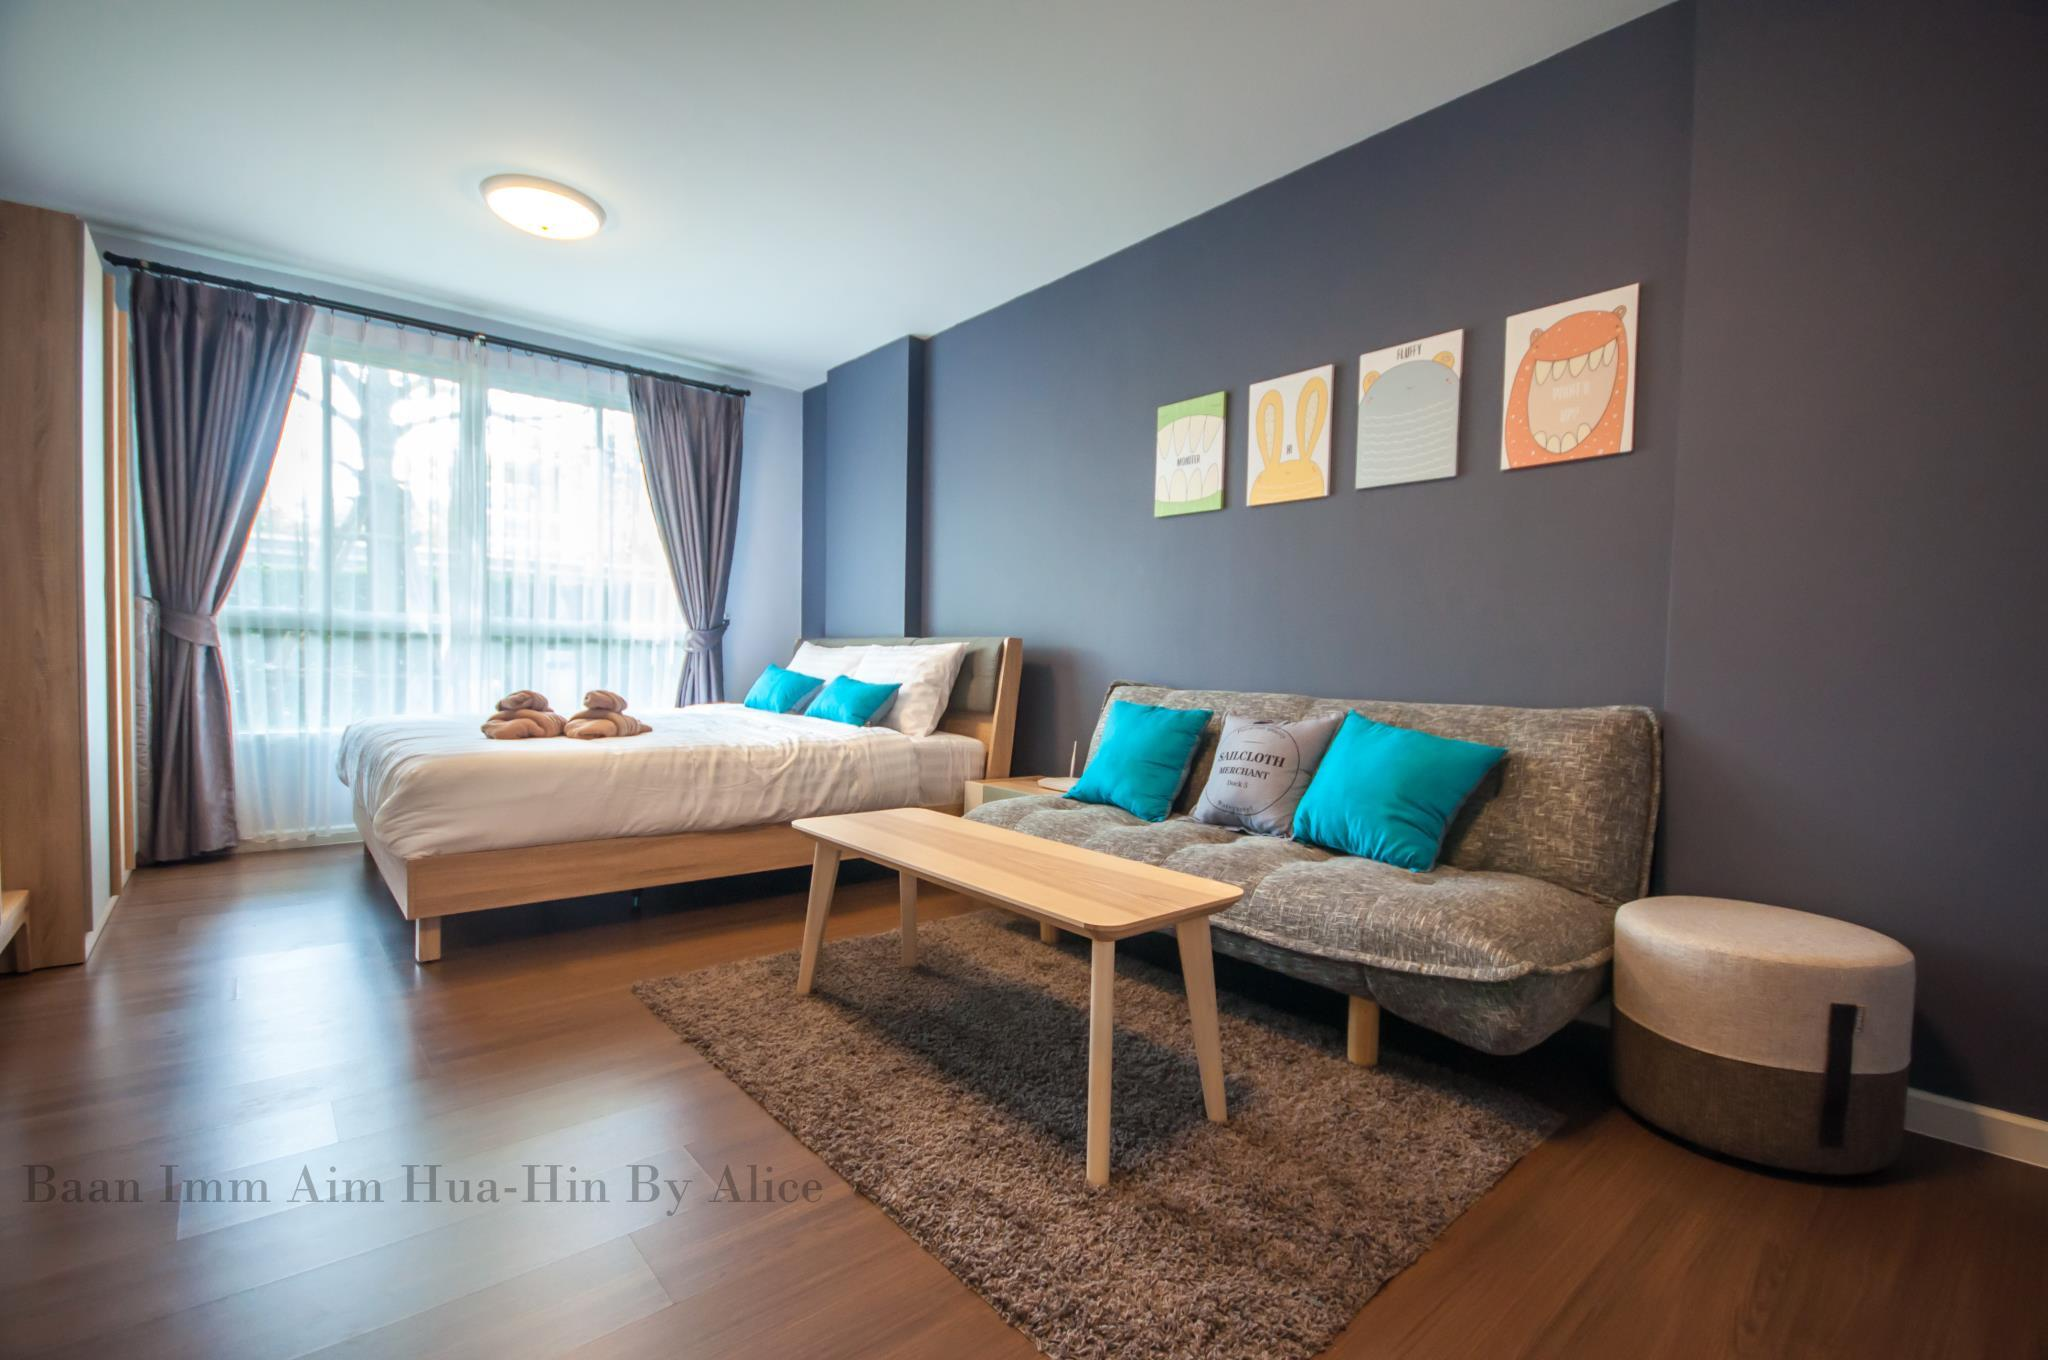 Hotels Review: Baan Imm Aim Hua Hin BY Alice – Room Prices, Pictures & Deals